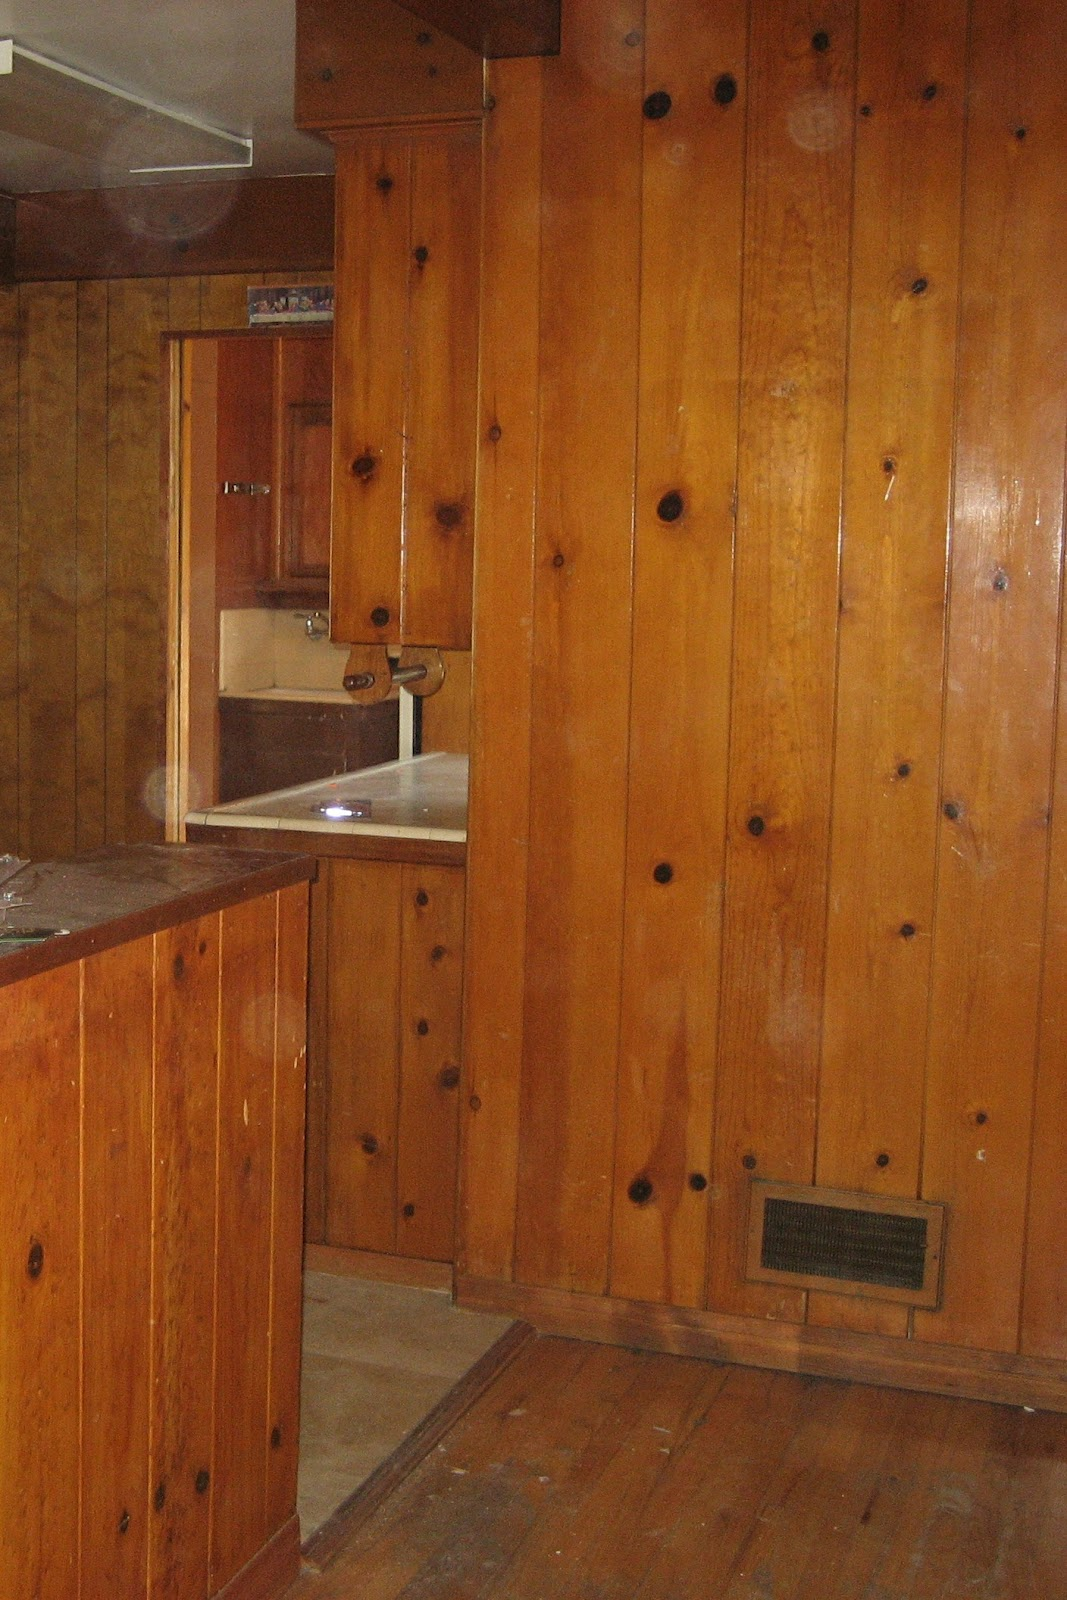 Paint Over Wood Paneling Walls: Hiding From The Laundry: Painting The Knotty Pine